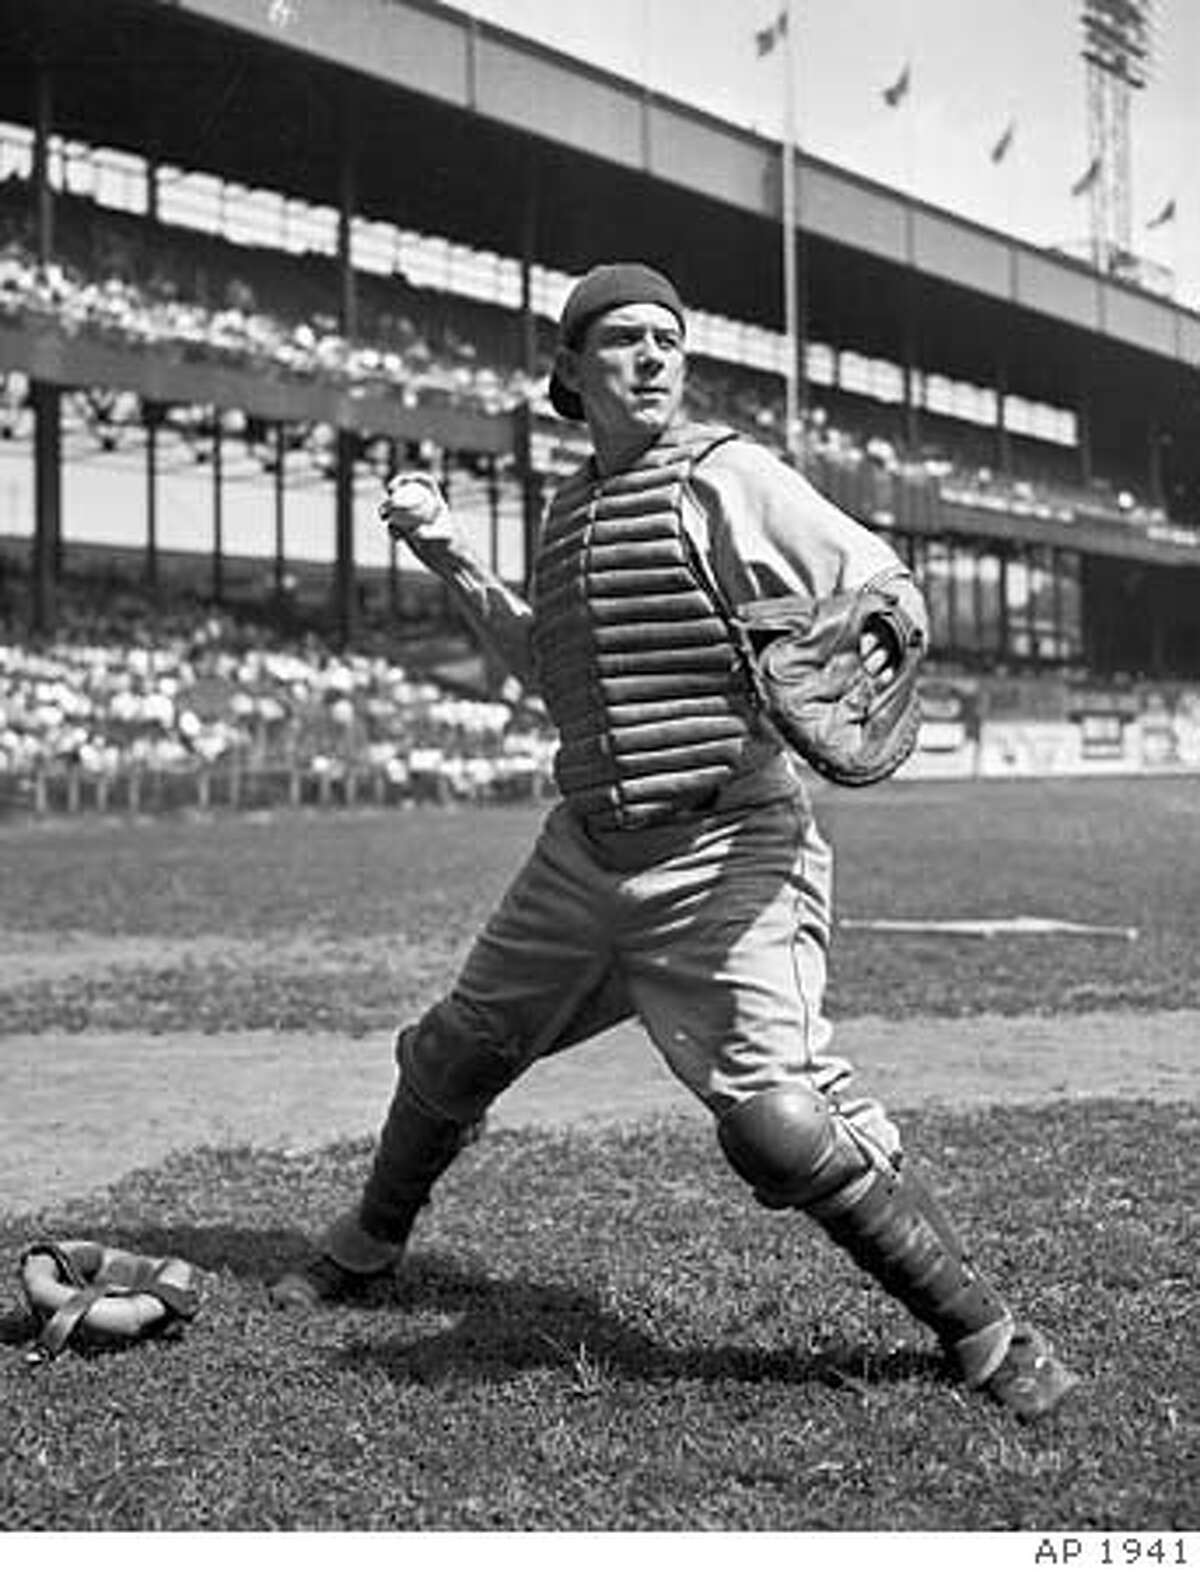 ** FILE ** Brooklyn Dodgers catch Mickey Owen is shown in this Sept. 1941 file photo in New York. Owen, whose infamous dropped third strike proved costly to the Dodgers in the 1941 World Series against the New York Yankees, died Wednesday, July 13, 2005, after a long illness. Owen, 89, died at the Missouri Veterans Home in Mount Vernon, Mo. (AP Photo) A SEPT. 1941 B&W FILE PHOTO